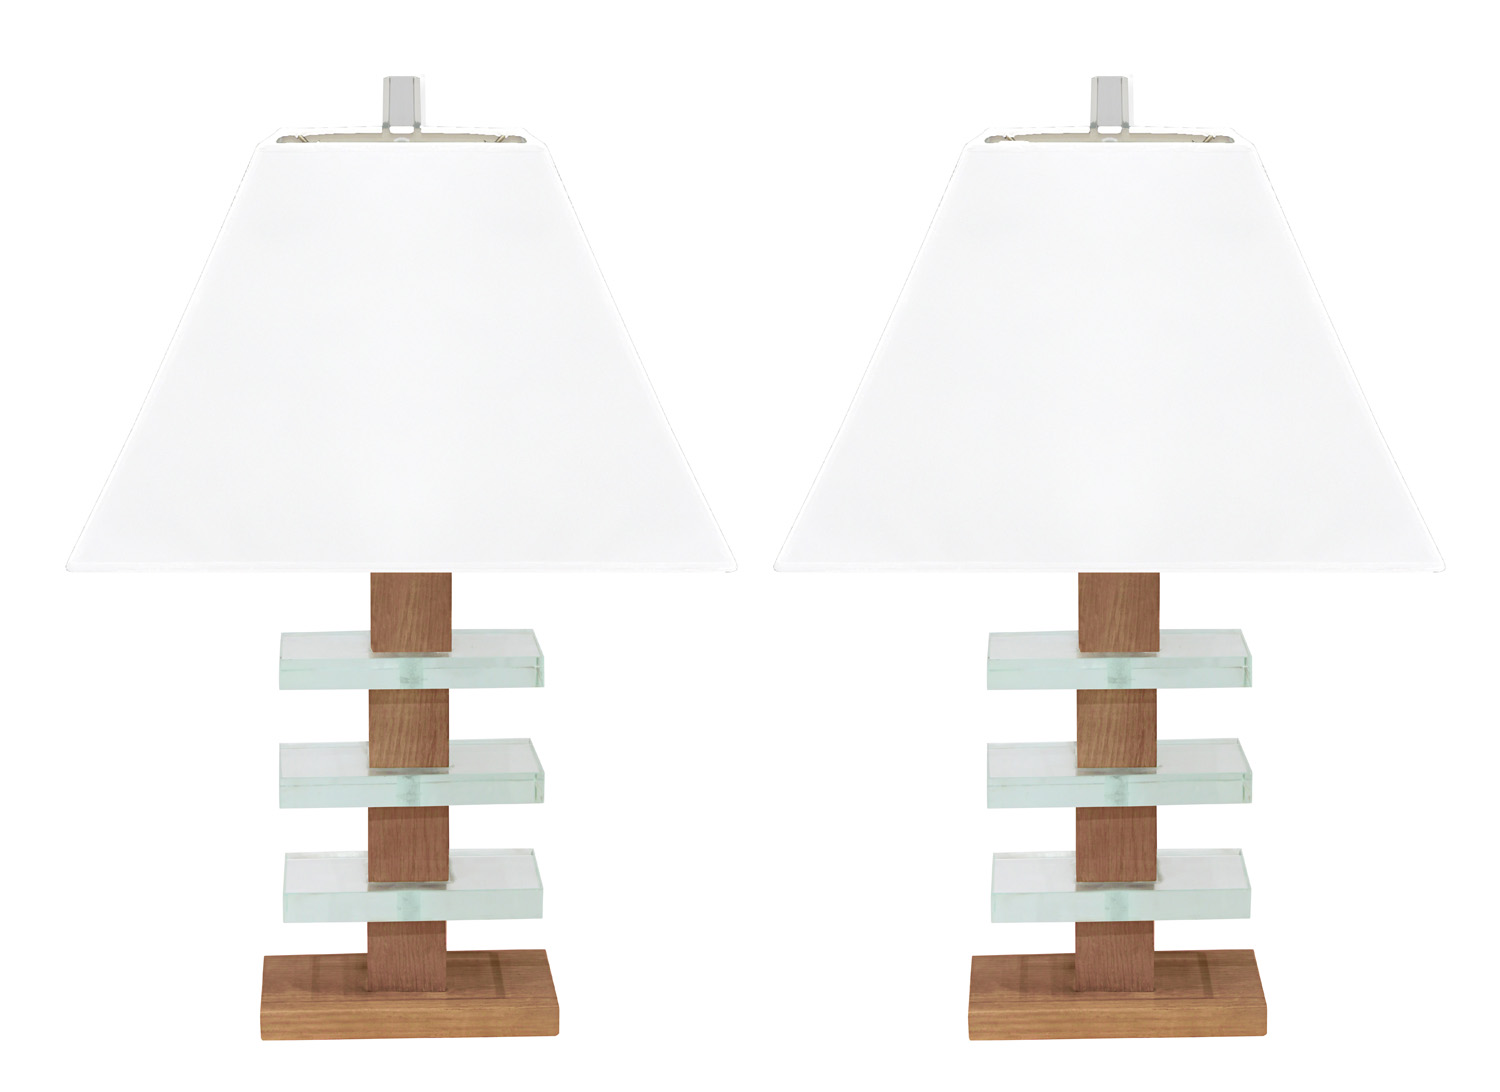 Modernage 65 attr glass+wood tablelamps333 hires white shade.jpg